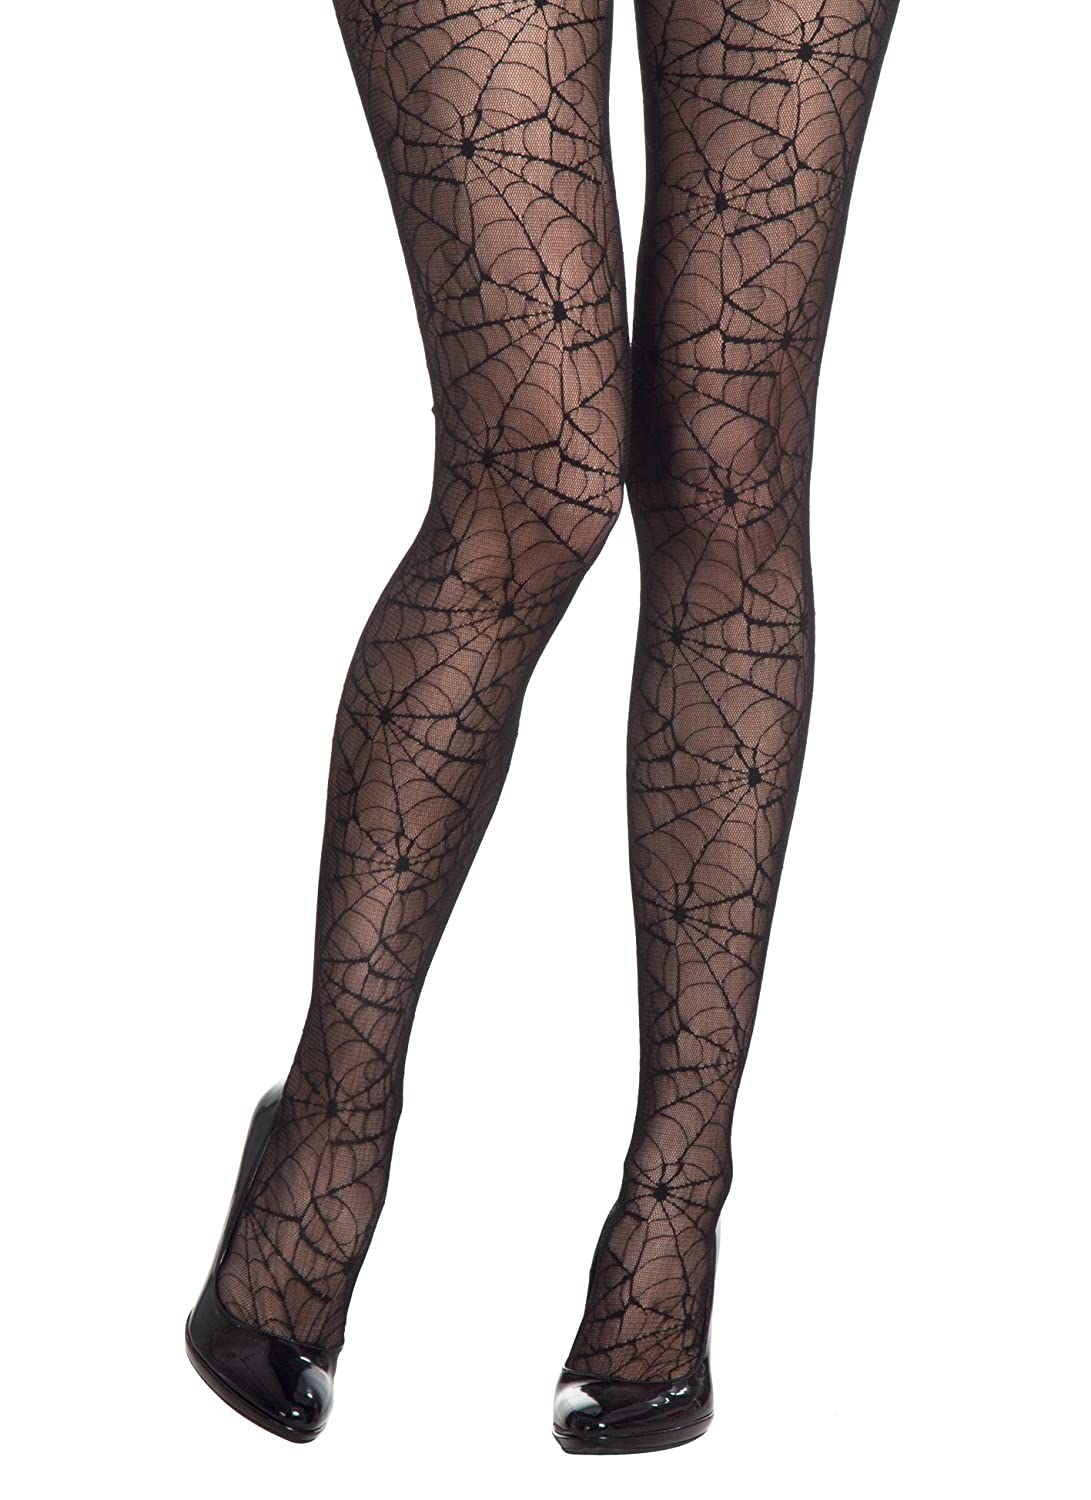 41310ed59eb88 Boland 87844 spider tights for adults: Amazon.co.uk: Toys & Games